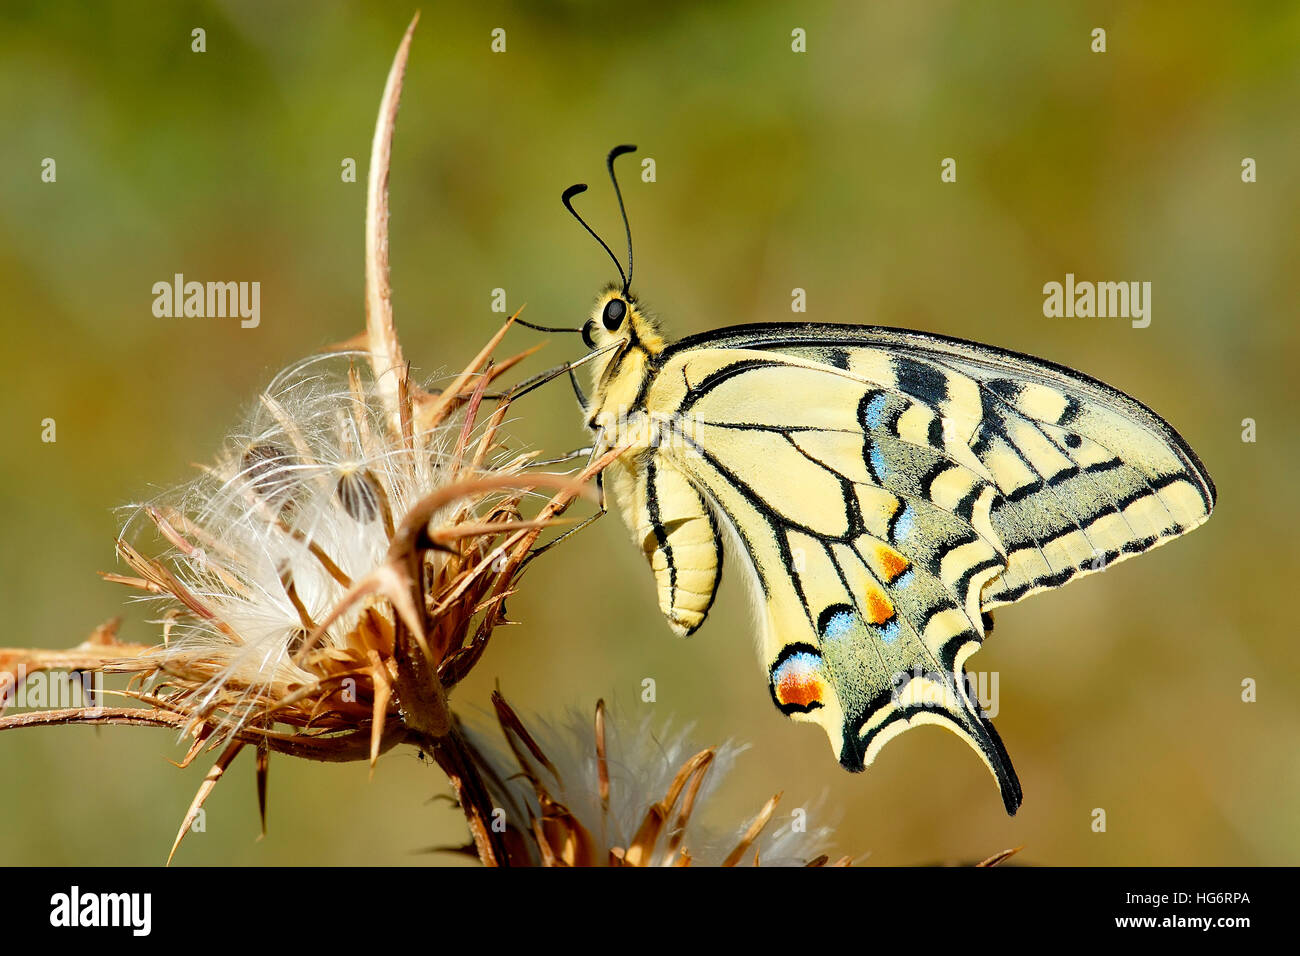 Swallowtail butterfly, Papilio machaon, Israel - Stock Image